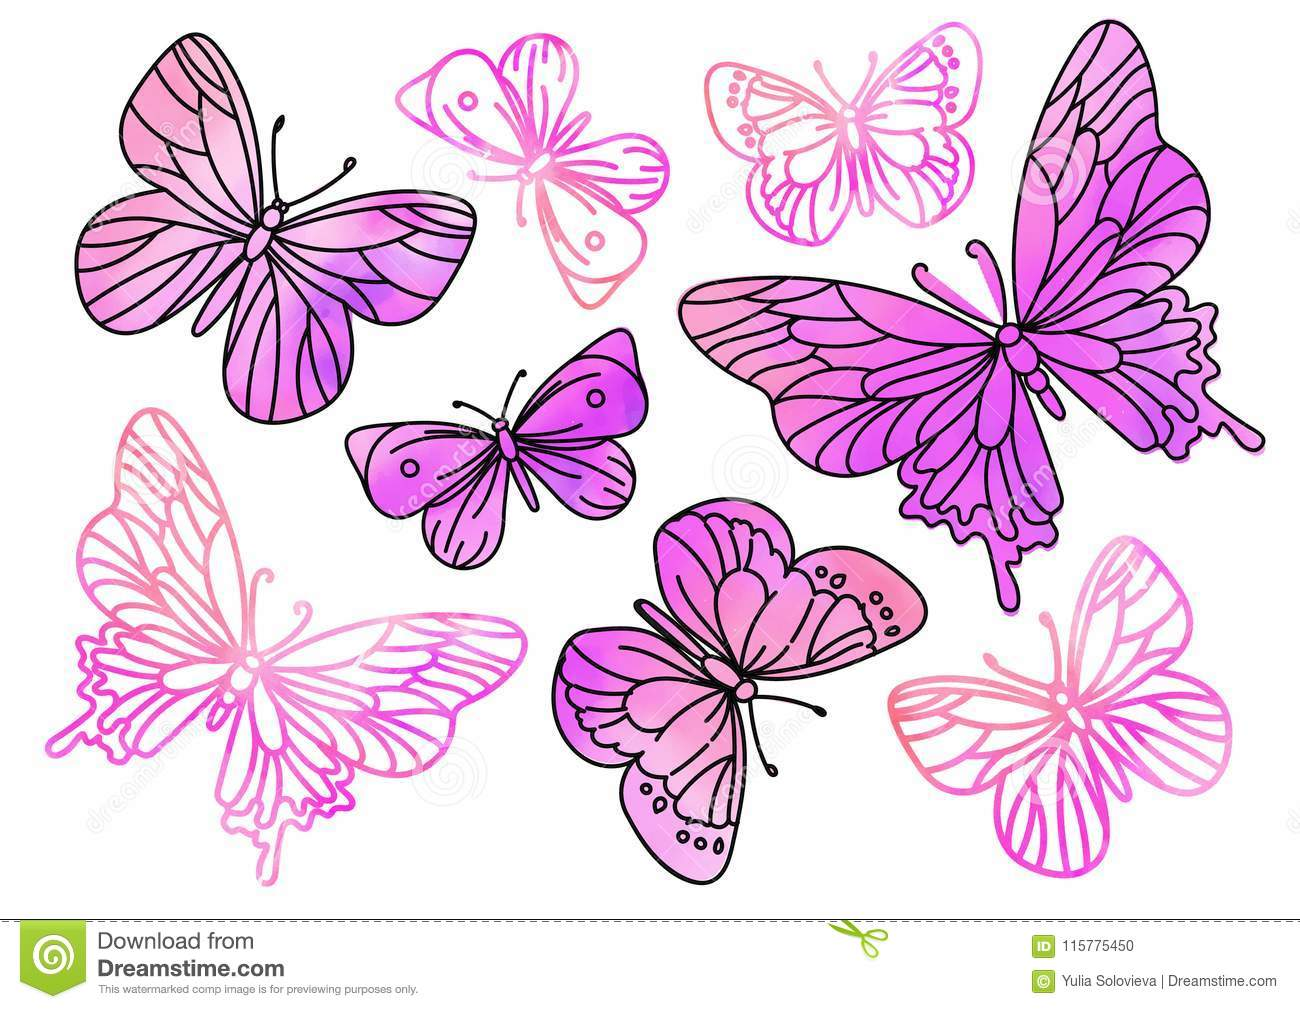 Fairy Clipart PINK BUTTERFLIES Color Vector Illustration Magic Beautiful Picture Paint Drawing Set Scrapbooking Golden